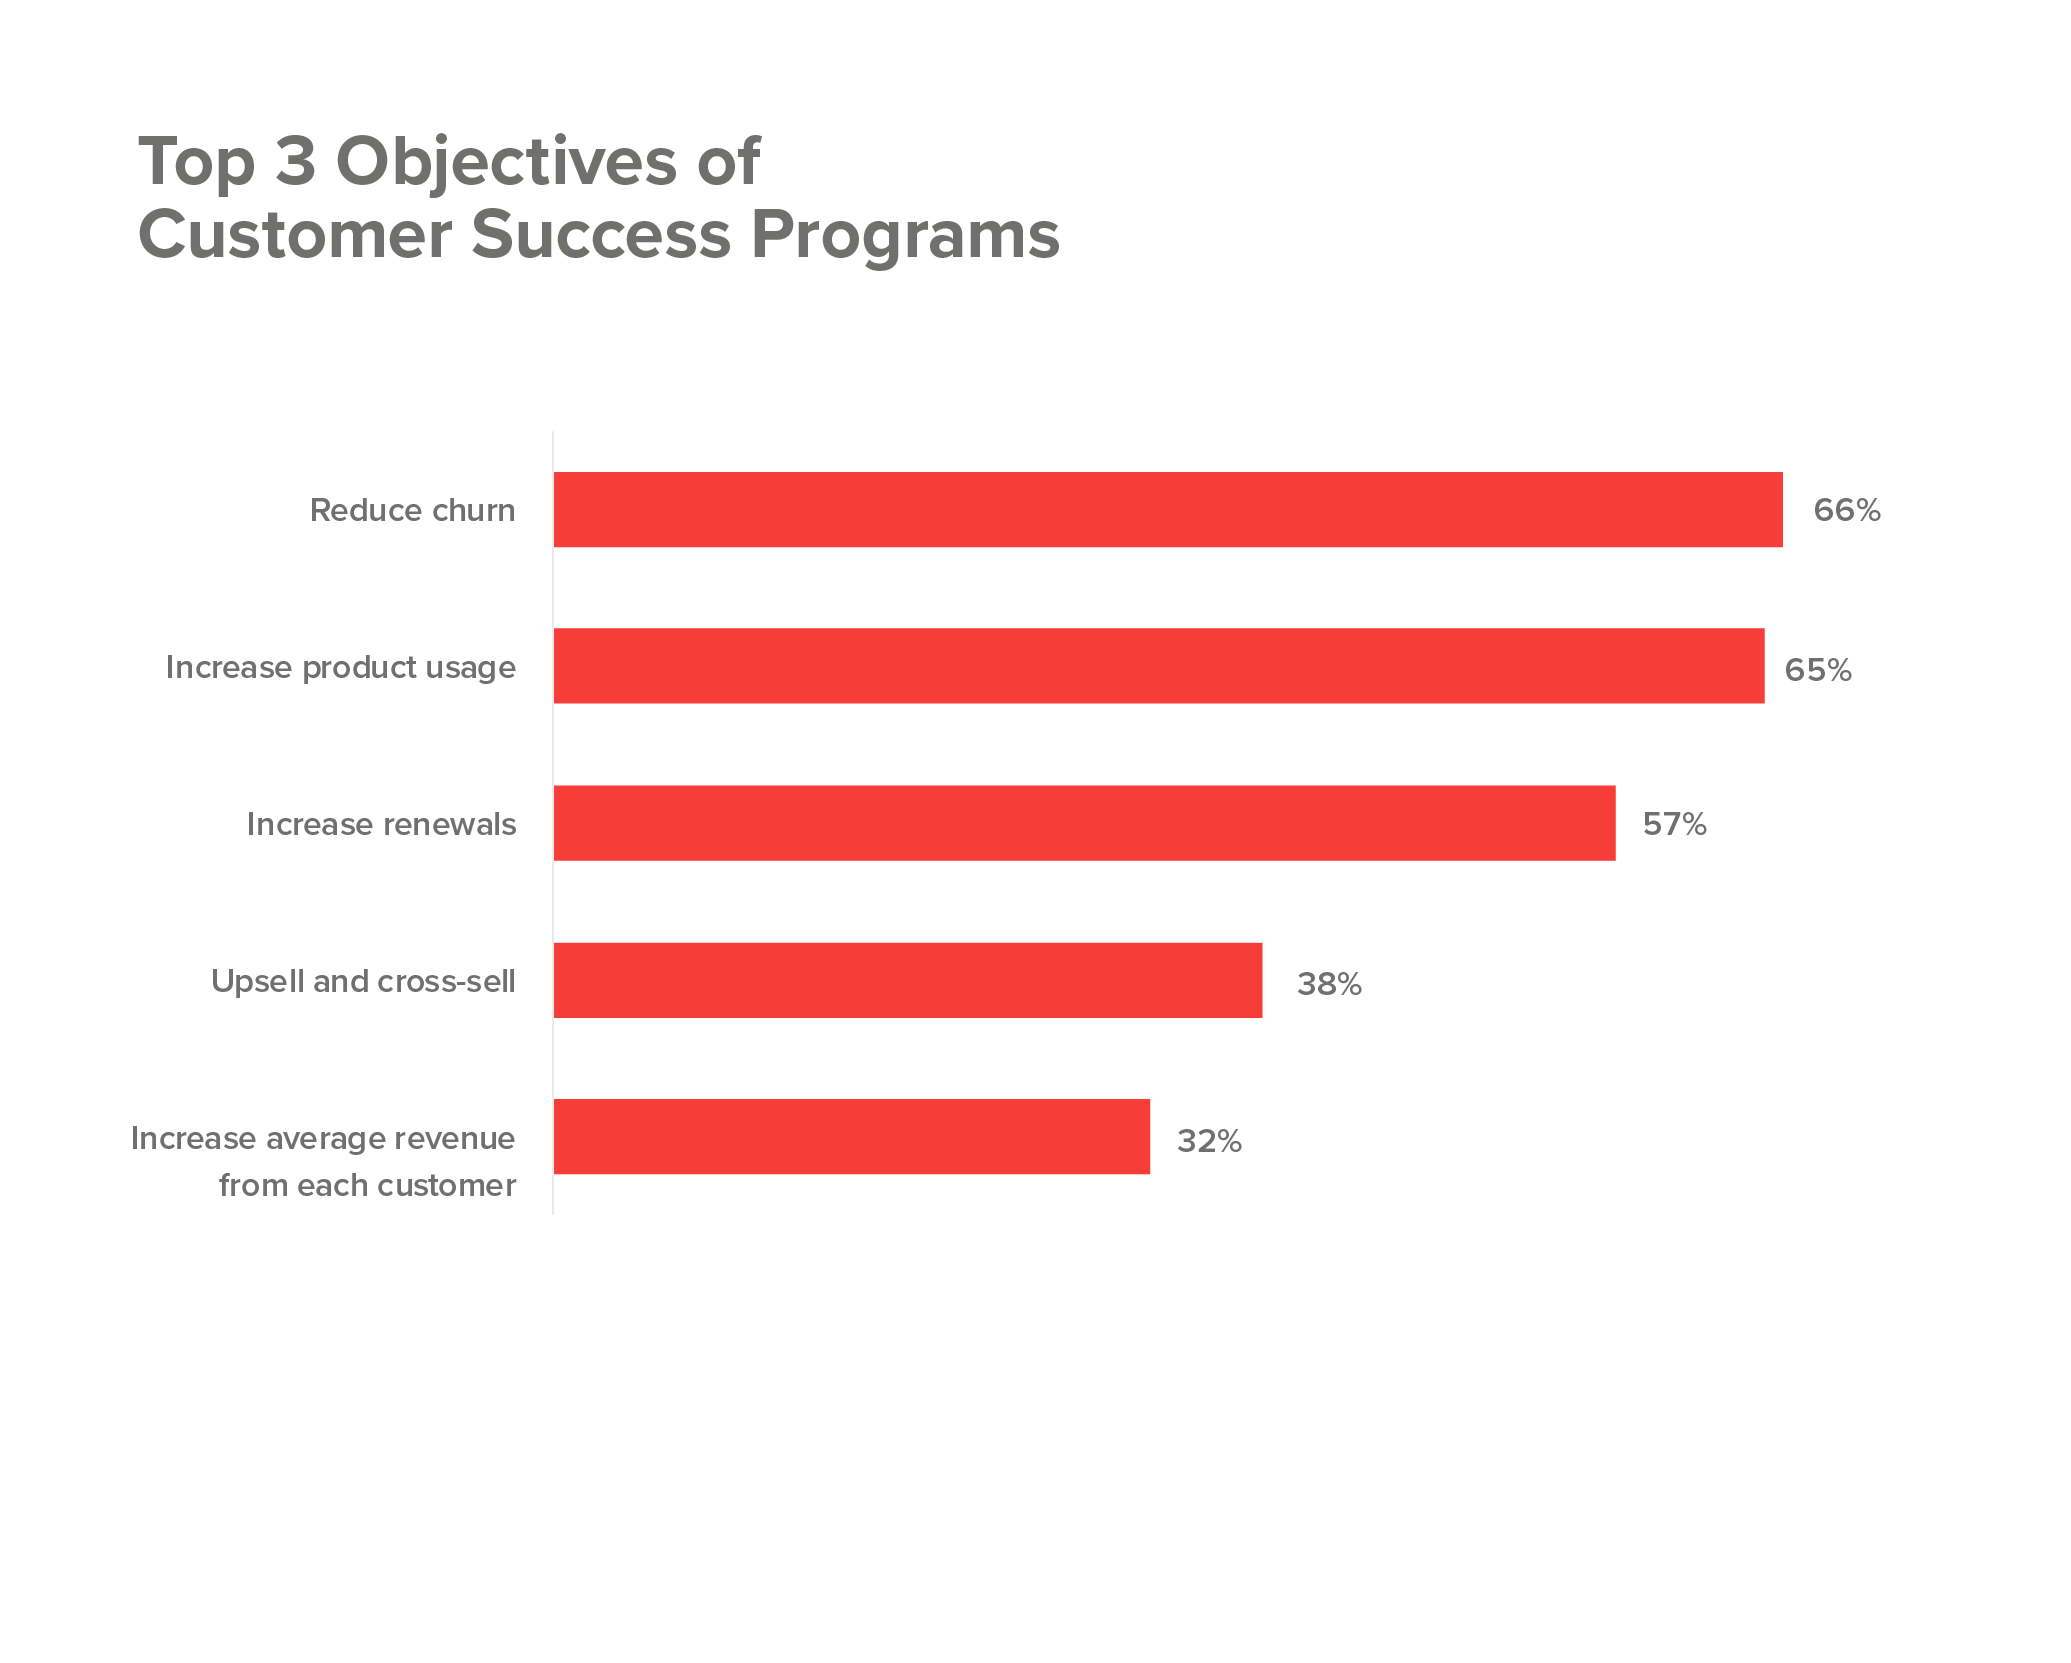 Customer success program objectives